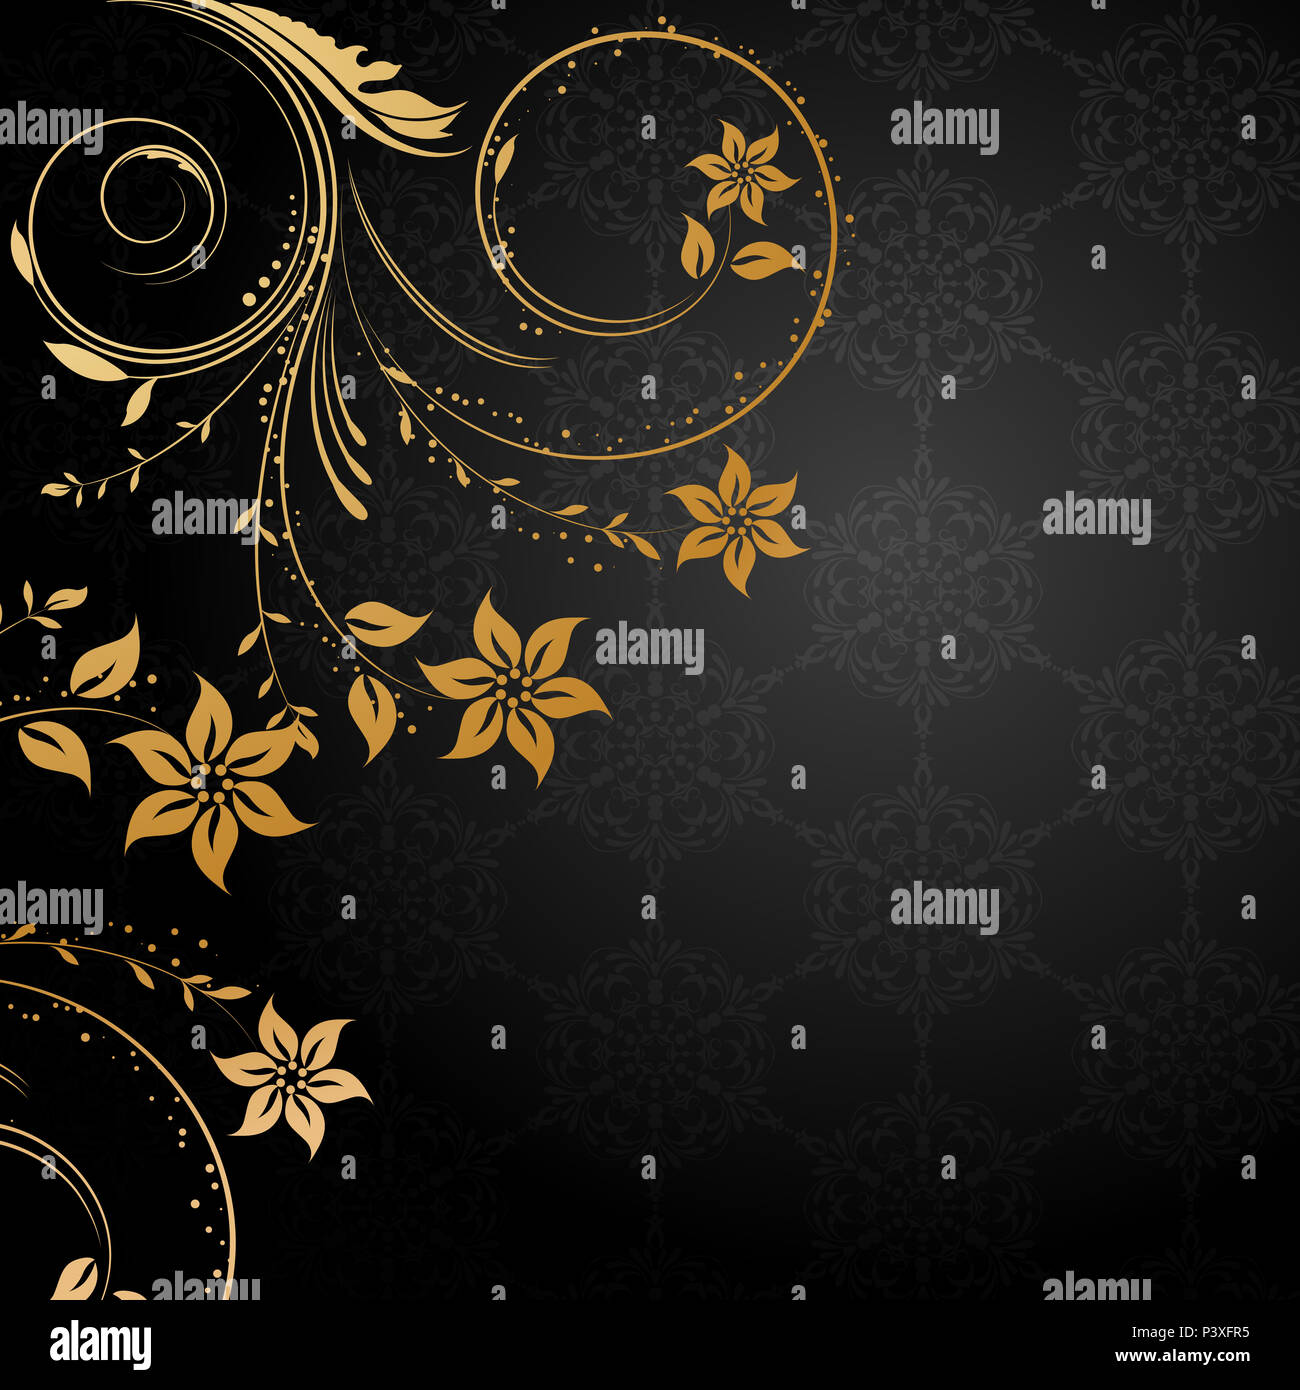 Decorative Floral Background With Gold Design Elements On Black